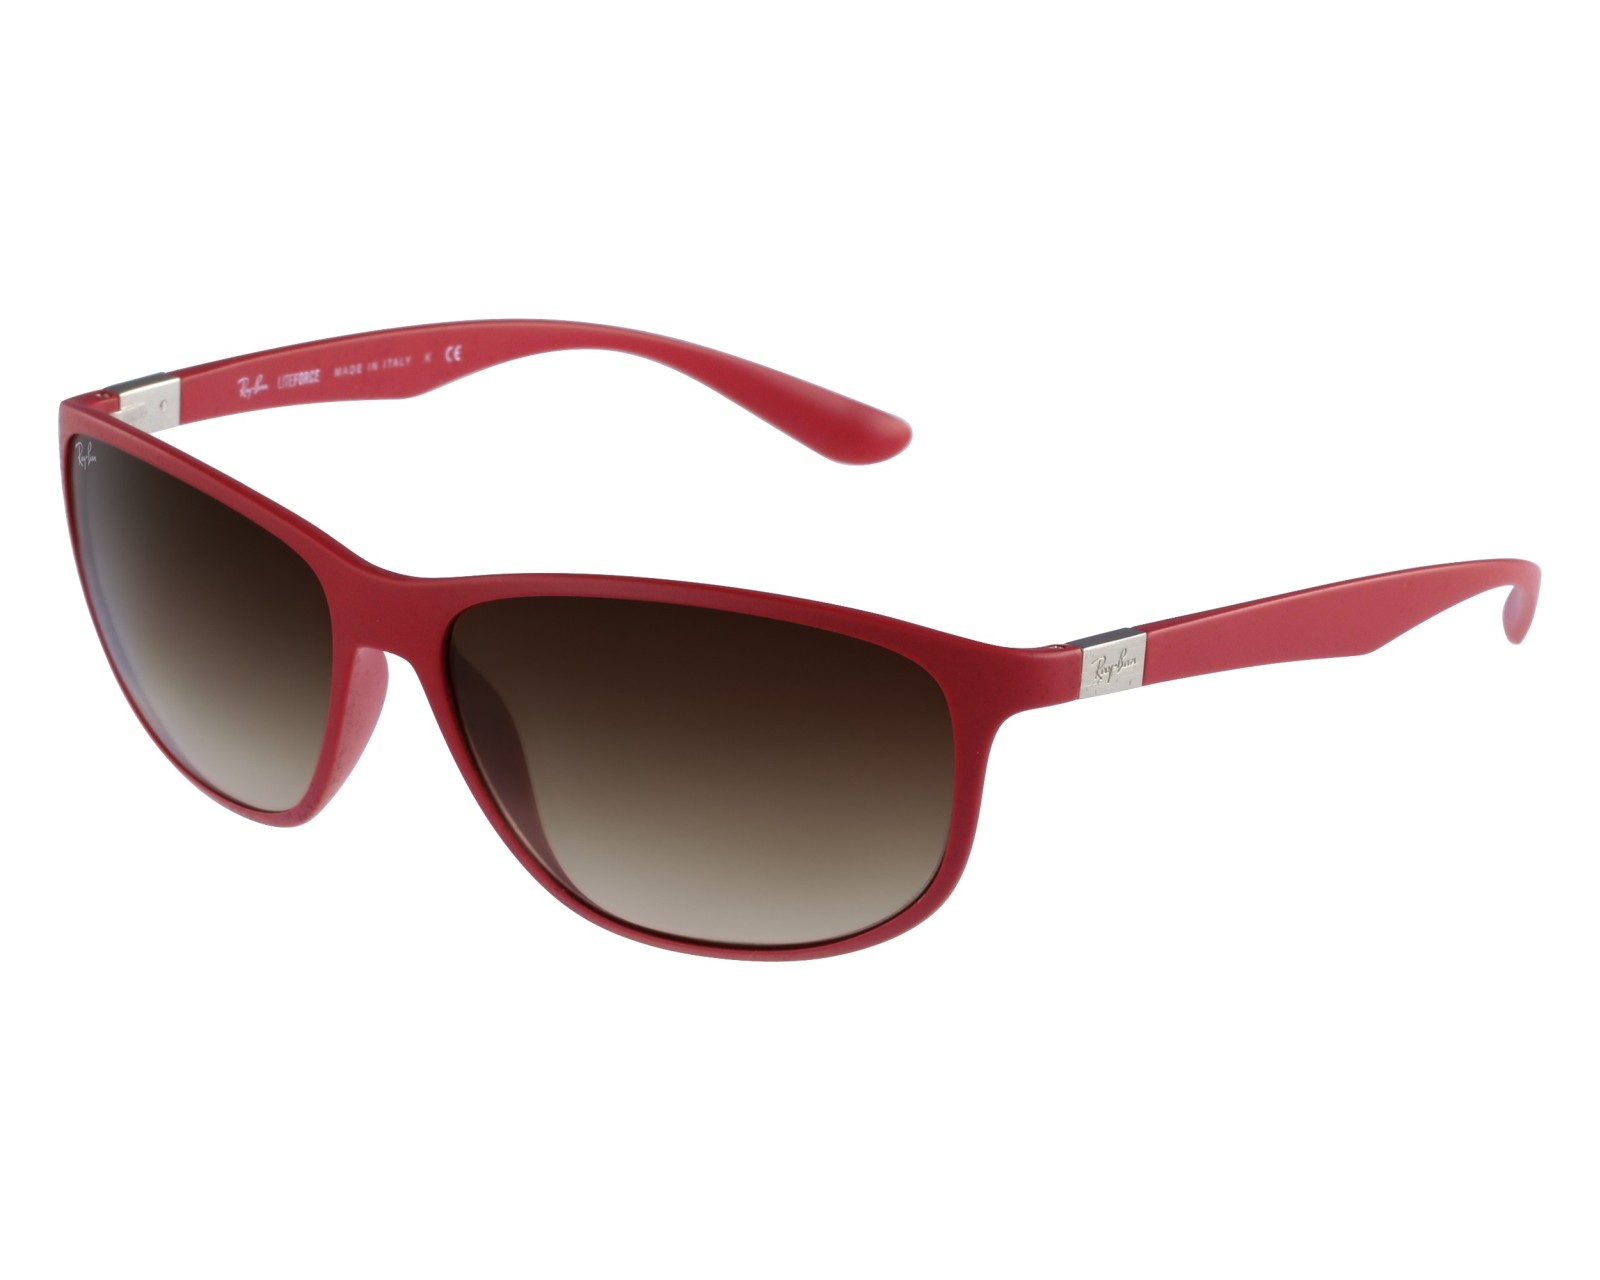 e33cf93096 thumbnail Sunglasses Ray-Ban RB-4213 6123 13 - Red Silver front view